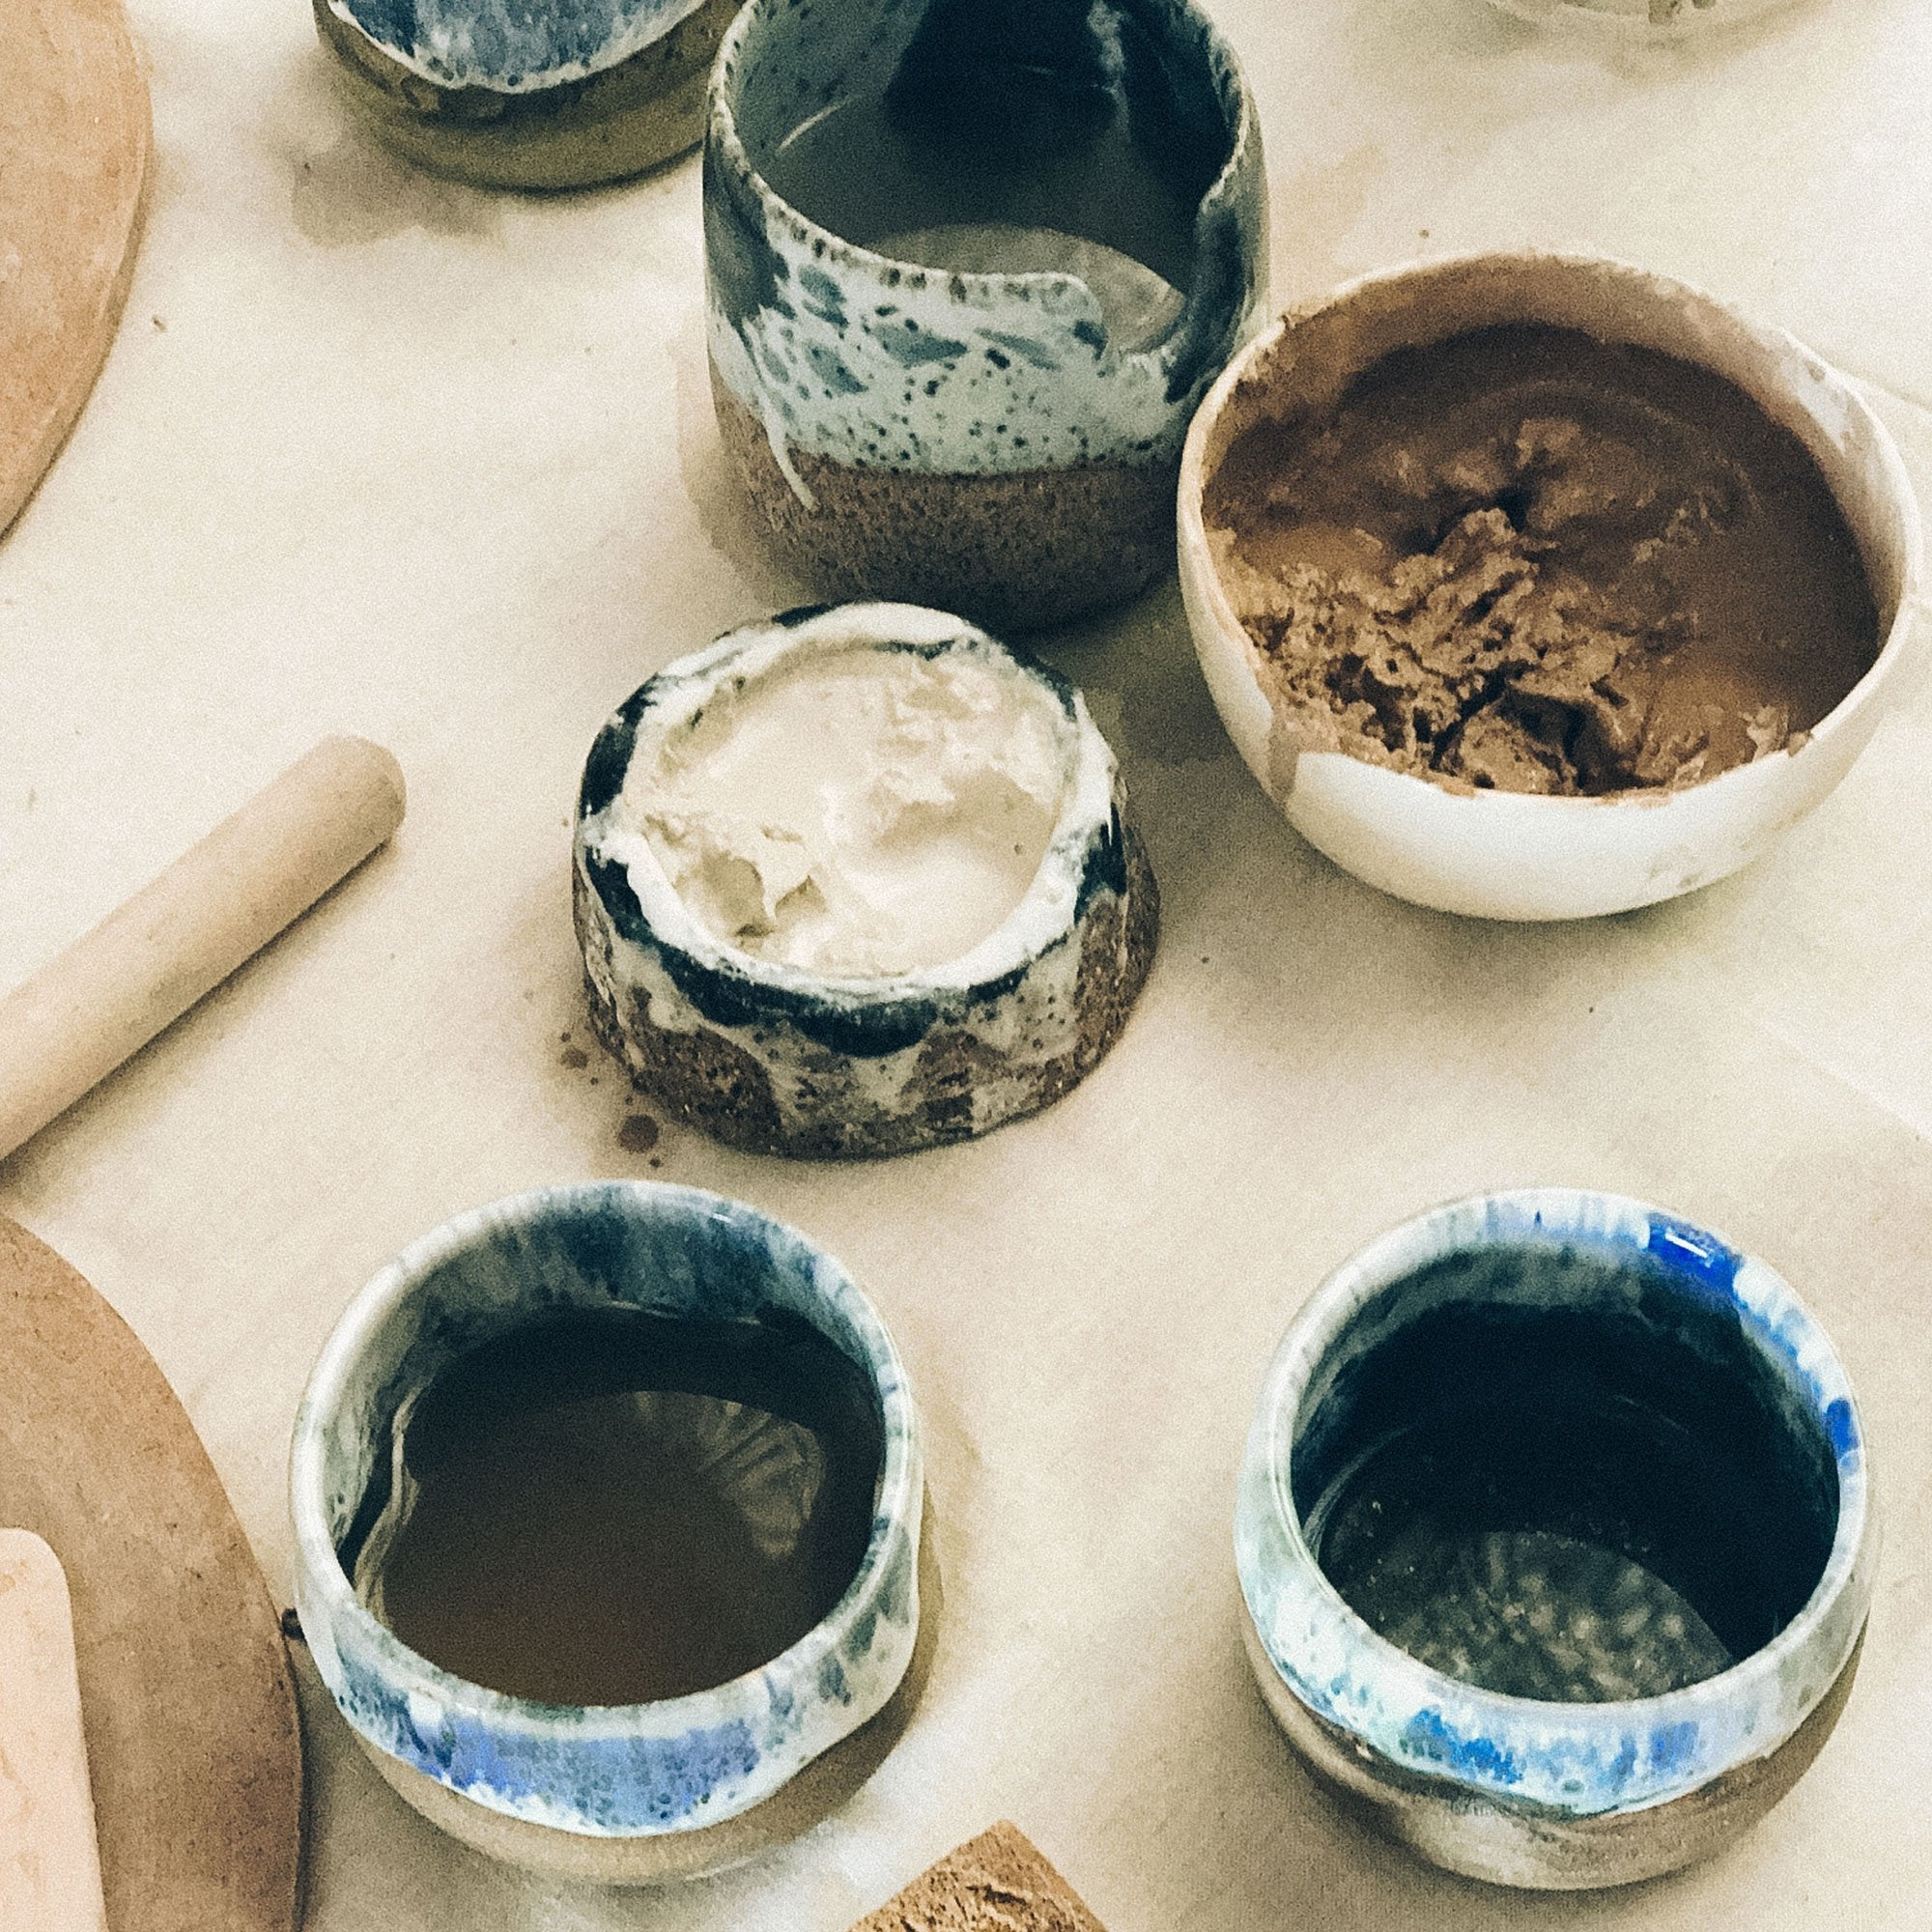 CLAY WITH SIT STILL CERAMICS